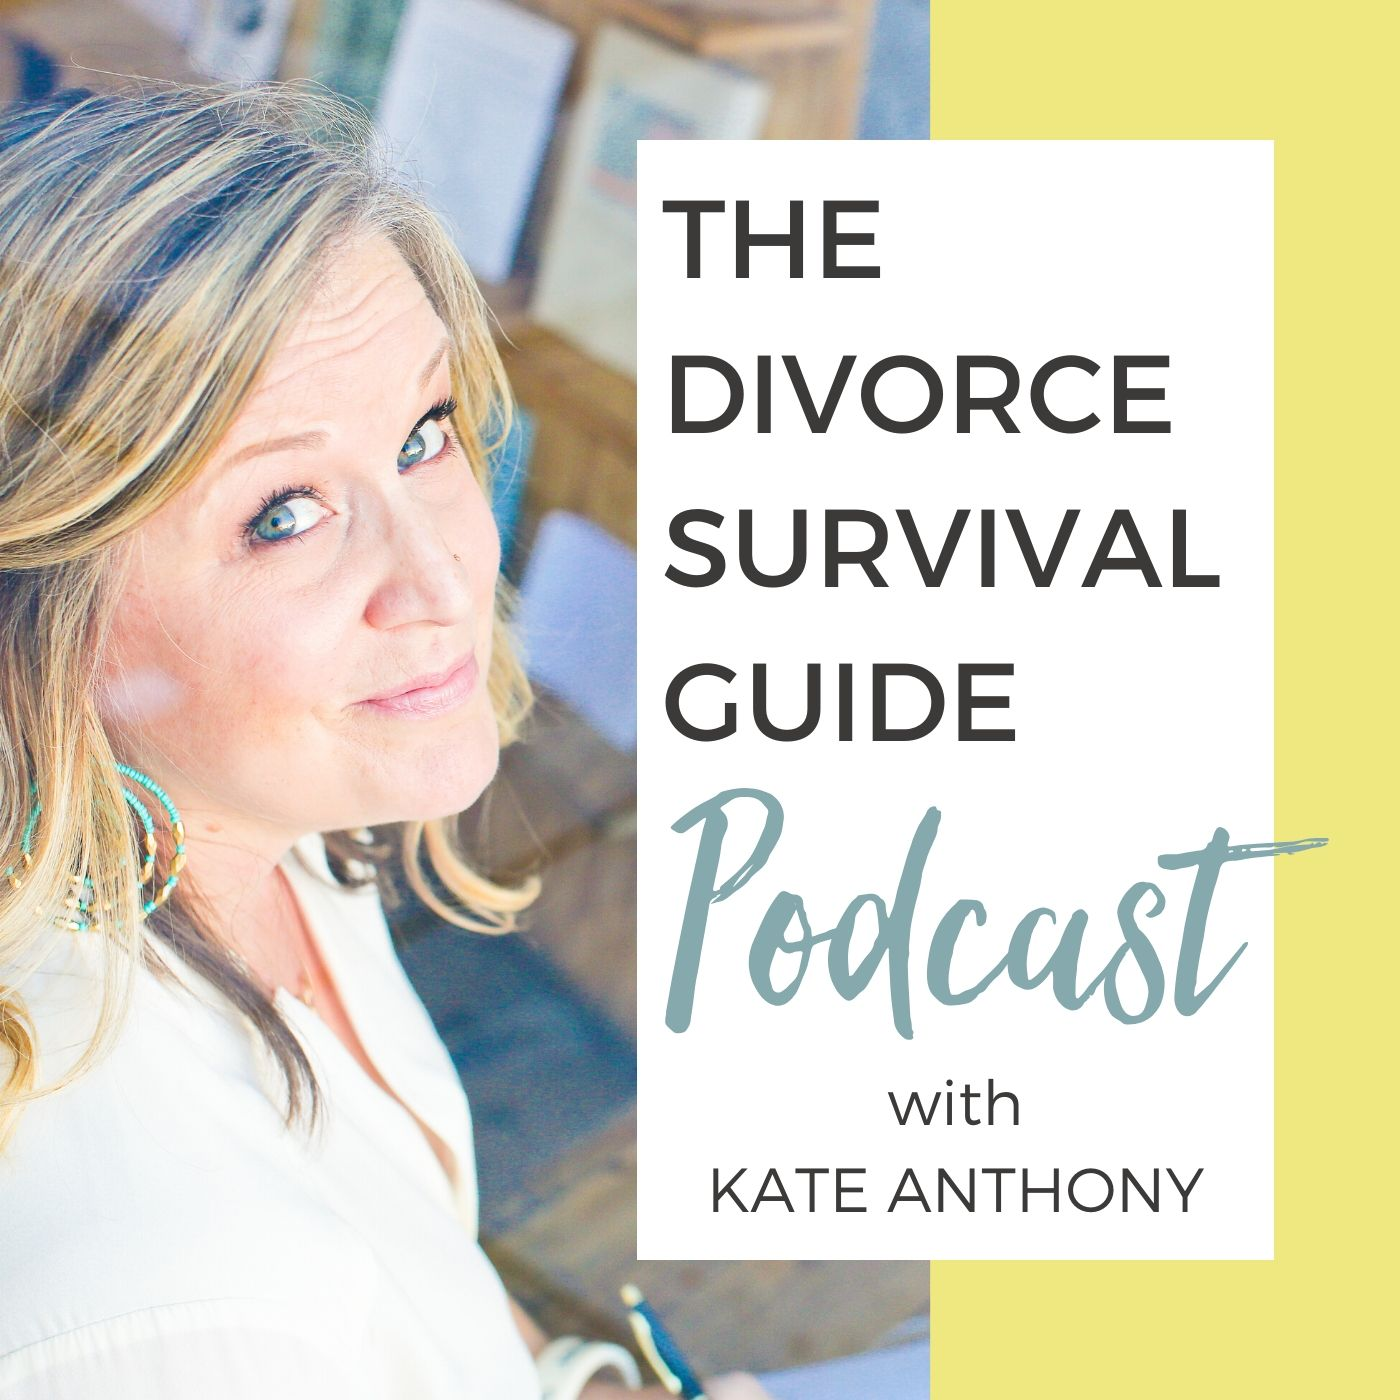 The Divorce Survival Guide Podcast